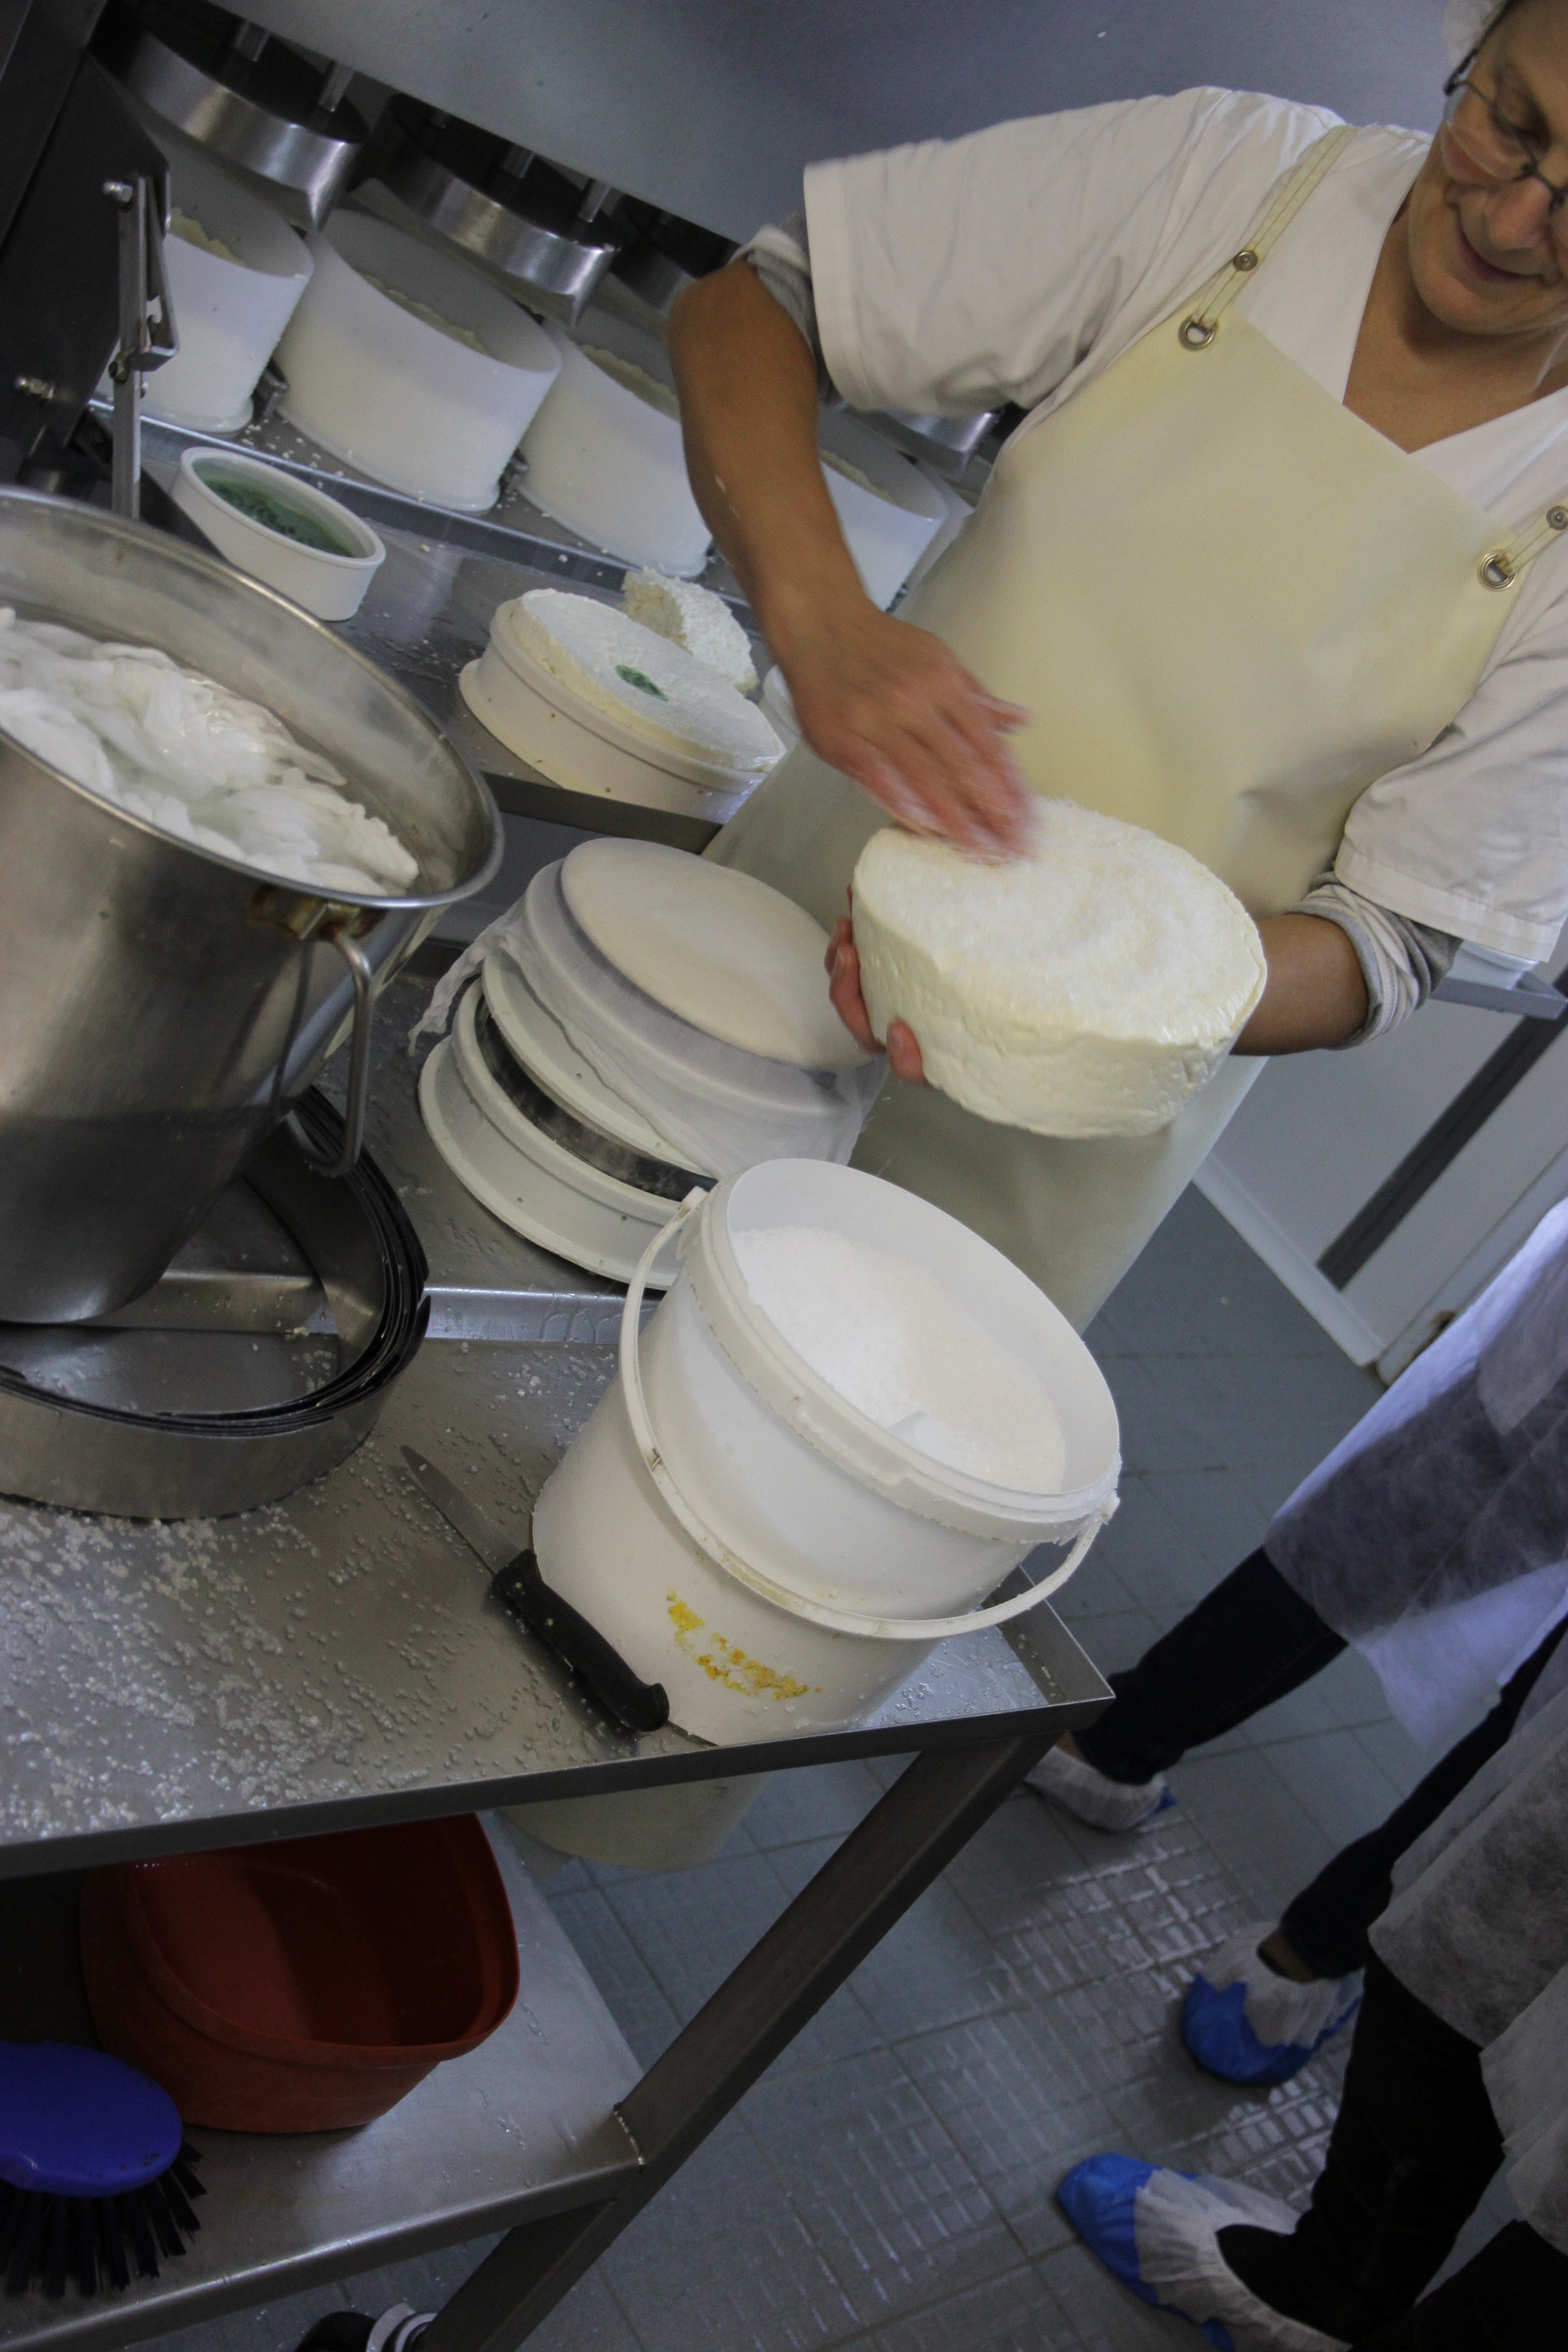 Farmstead production of St Nectaire at Auriel Farms in Montboudif (Auvergne). We visited the farm on Tuesday. The woman has just finished pre-pressing the fresh curd into molds and is salting them.